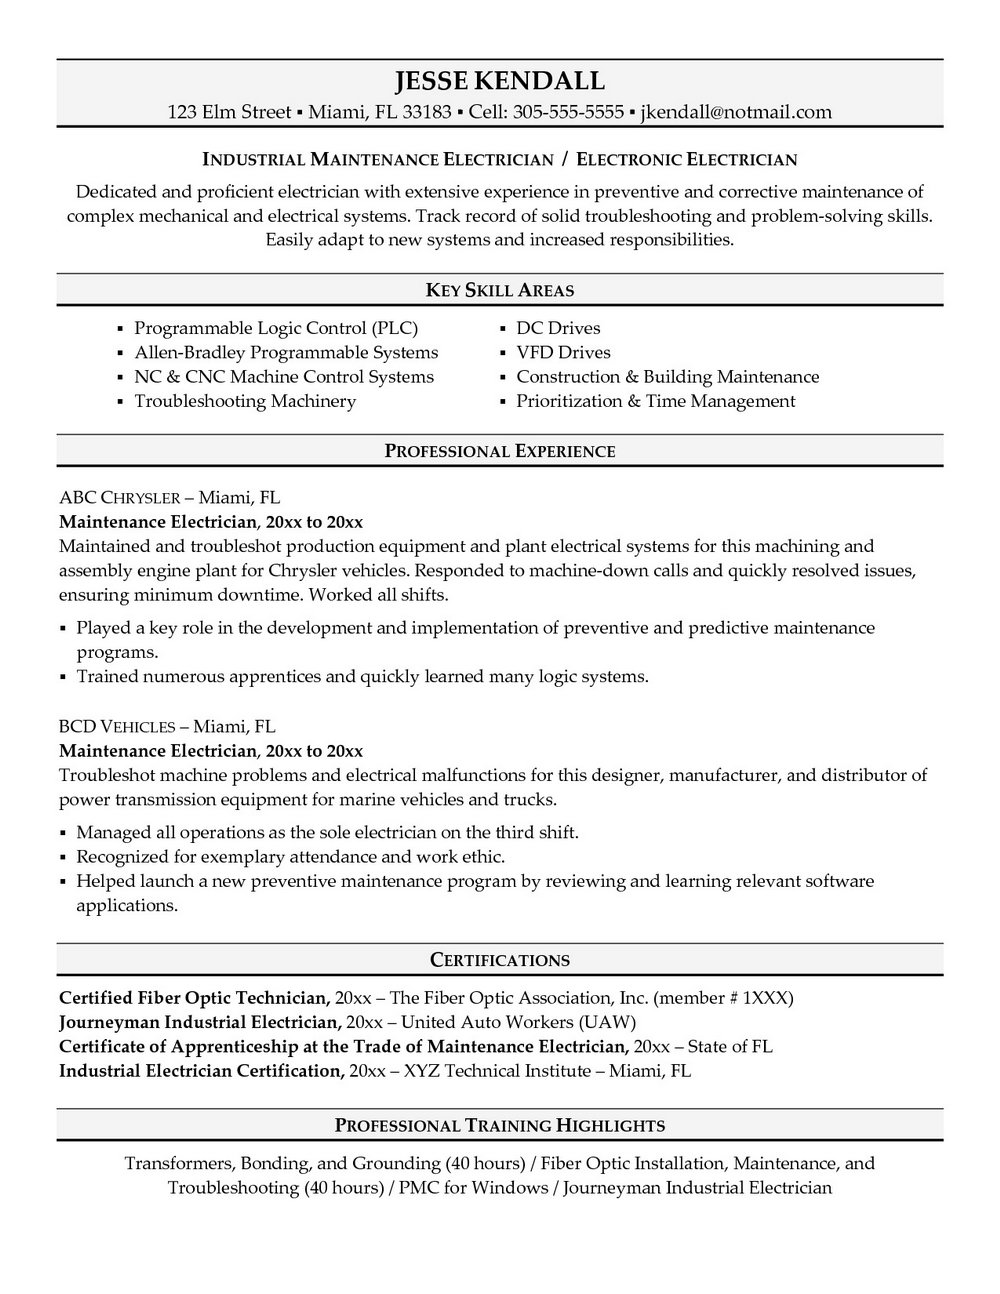 Sample Resume For Electrician Journeyman